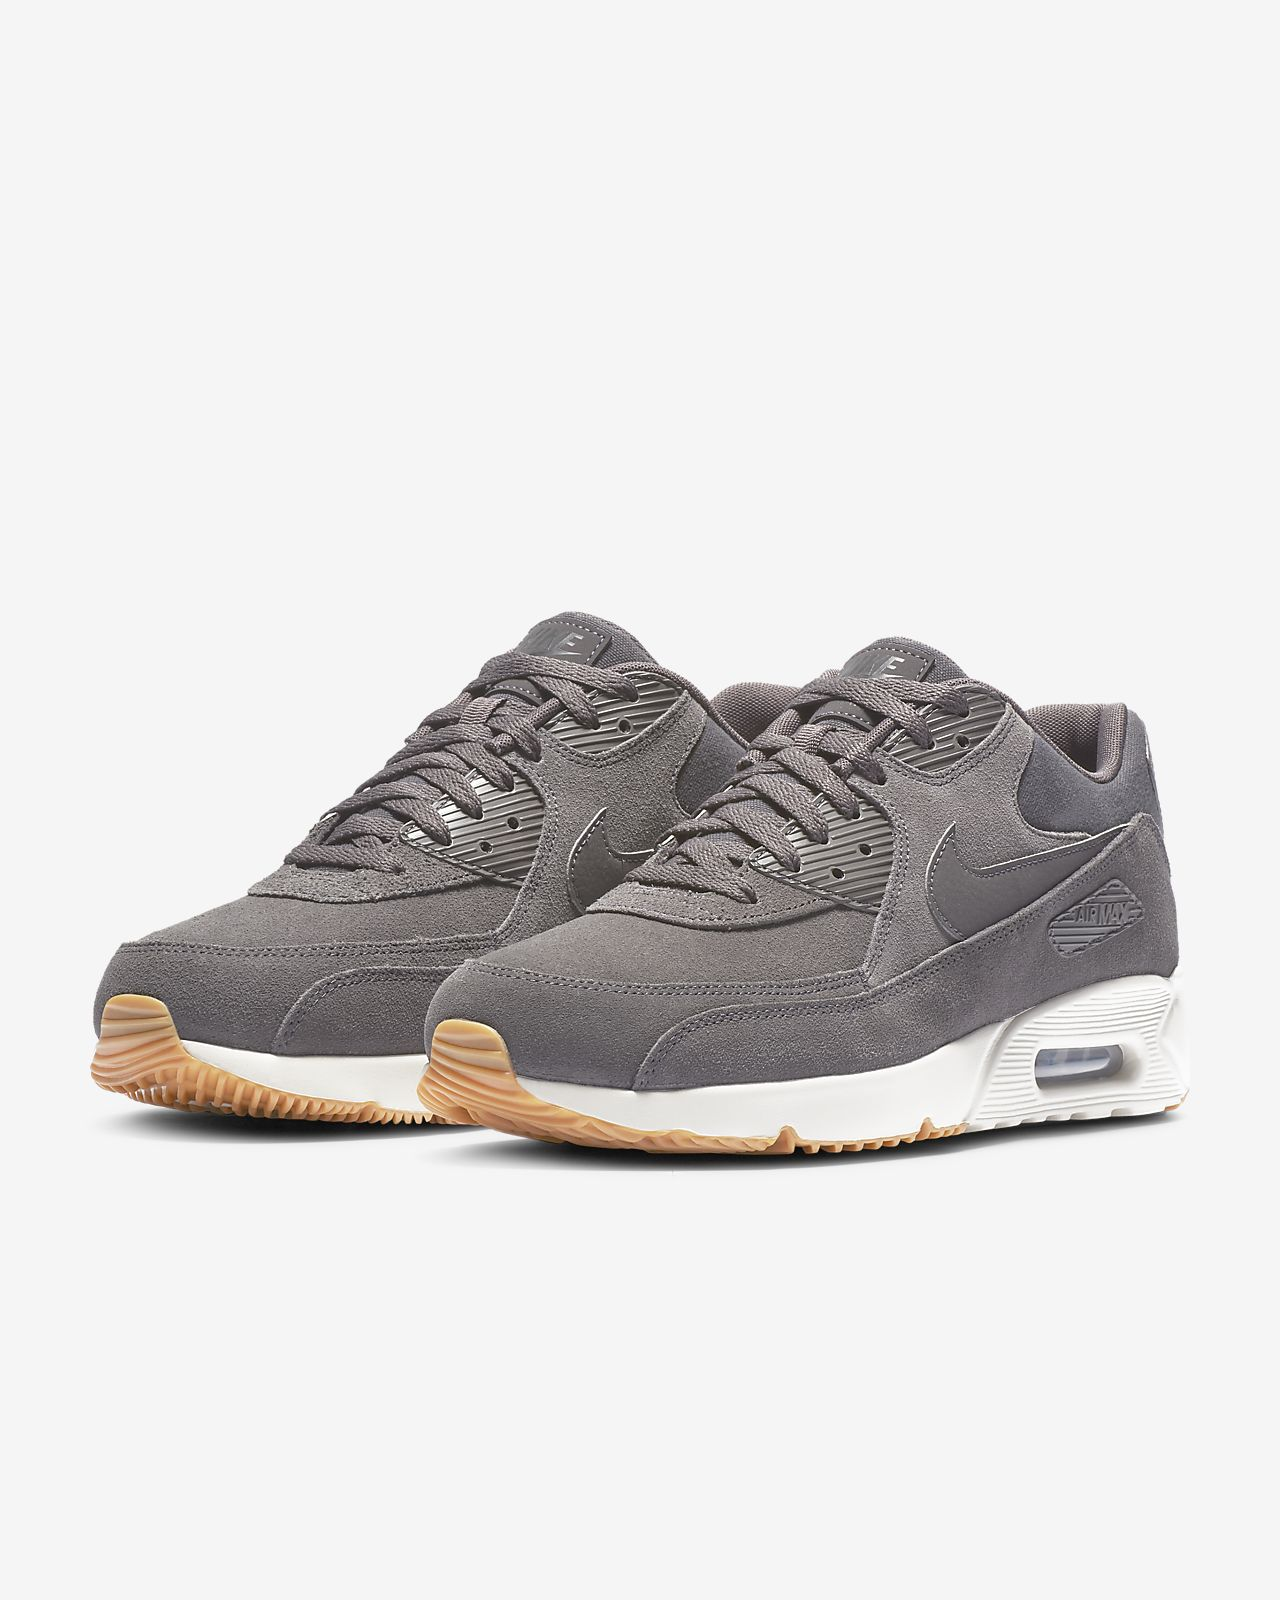 hot sale online ccf86 f9e1a ... Chaussure Nike Air Max 90 Ultra 2.0 pour Homme